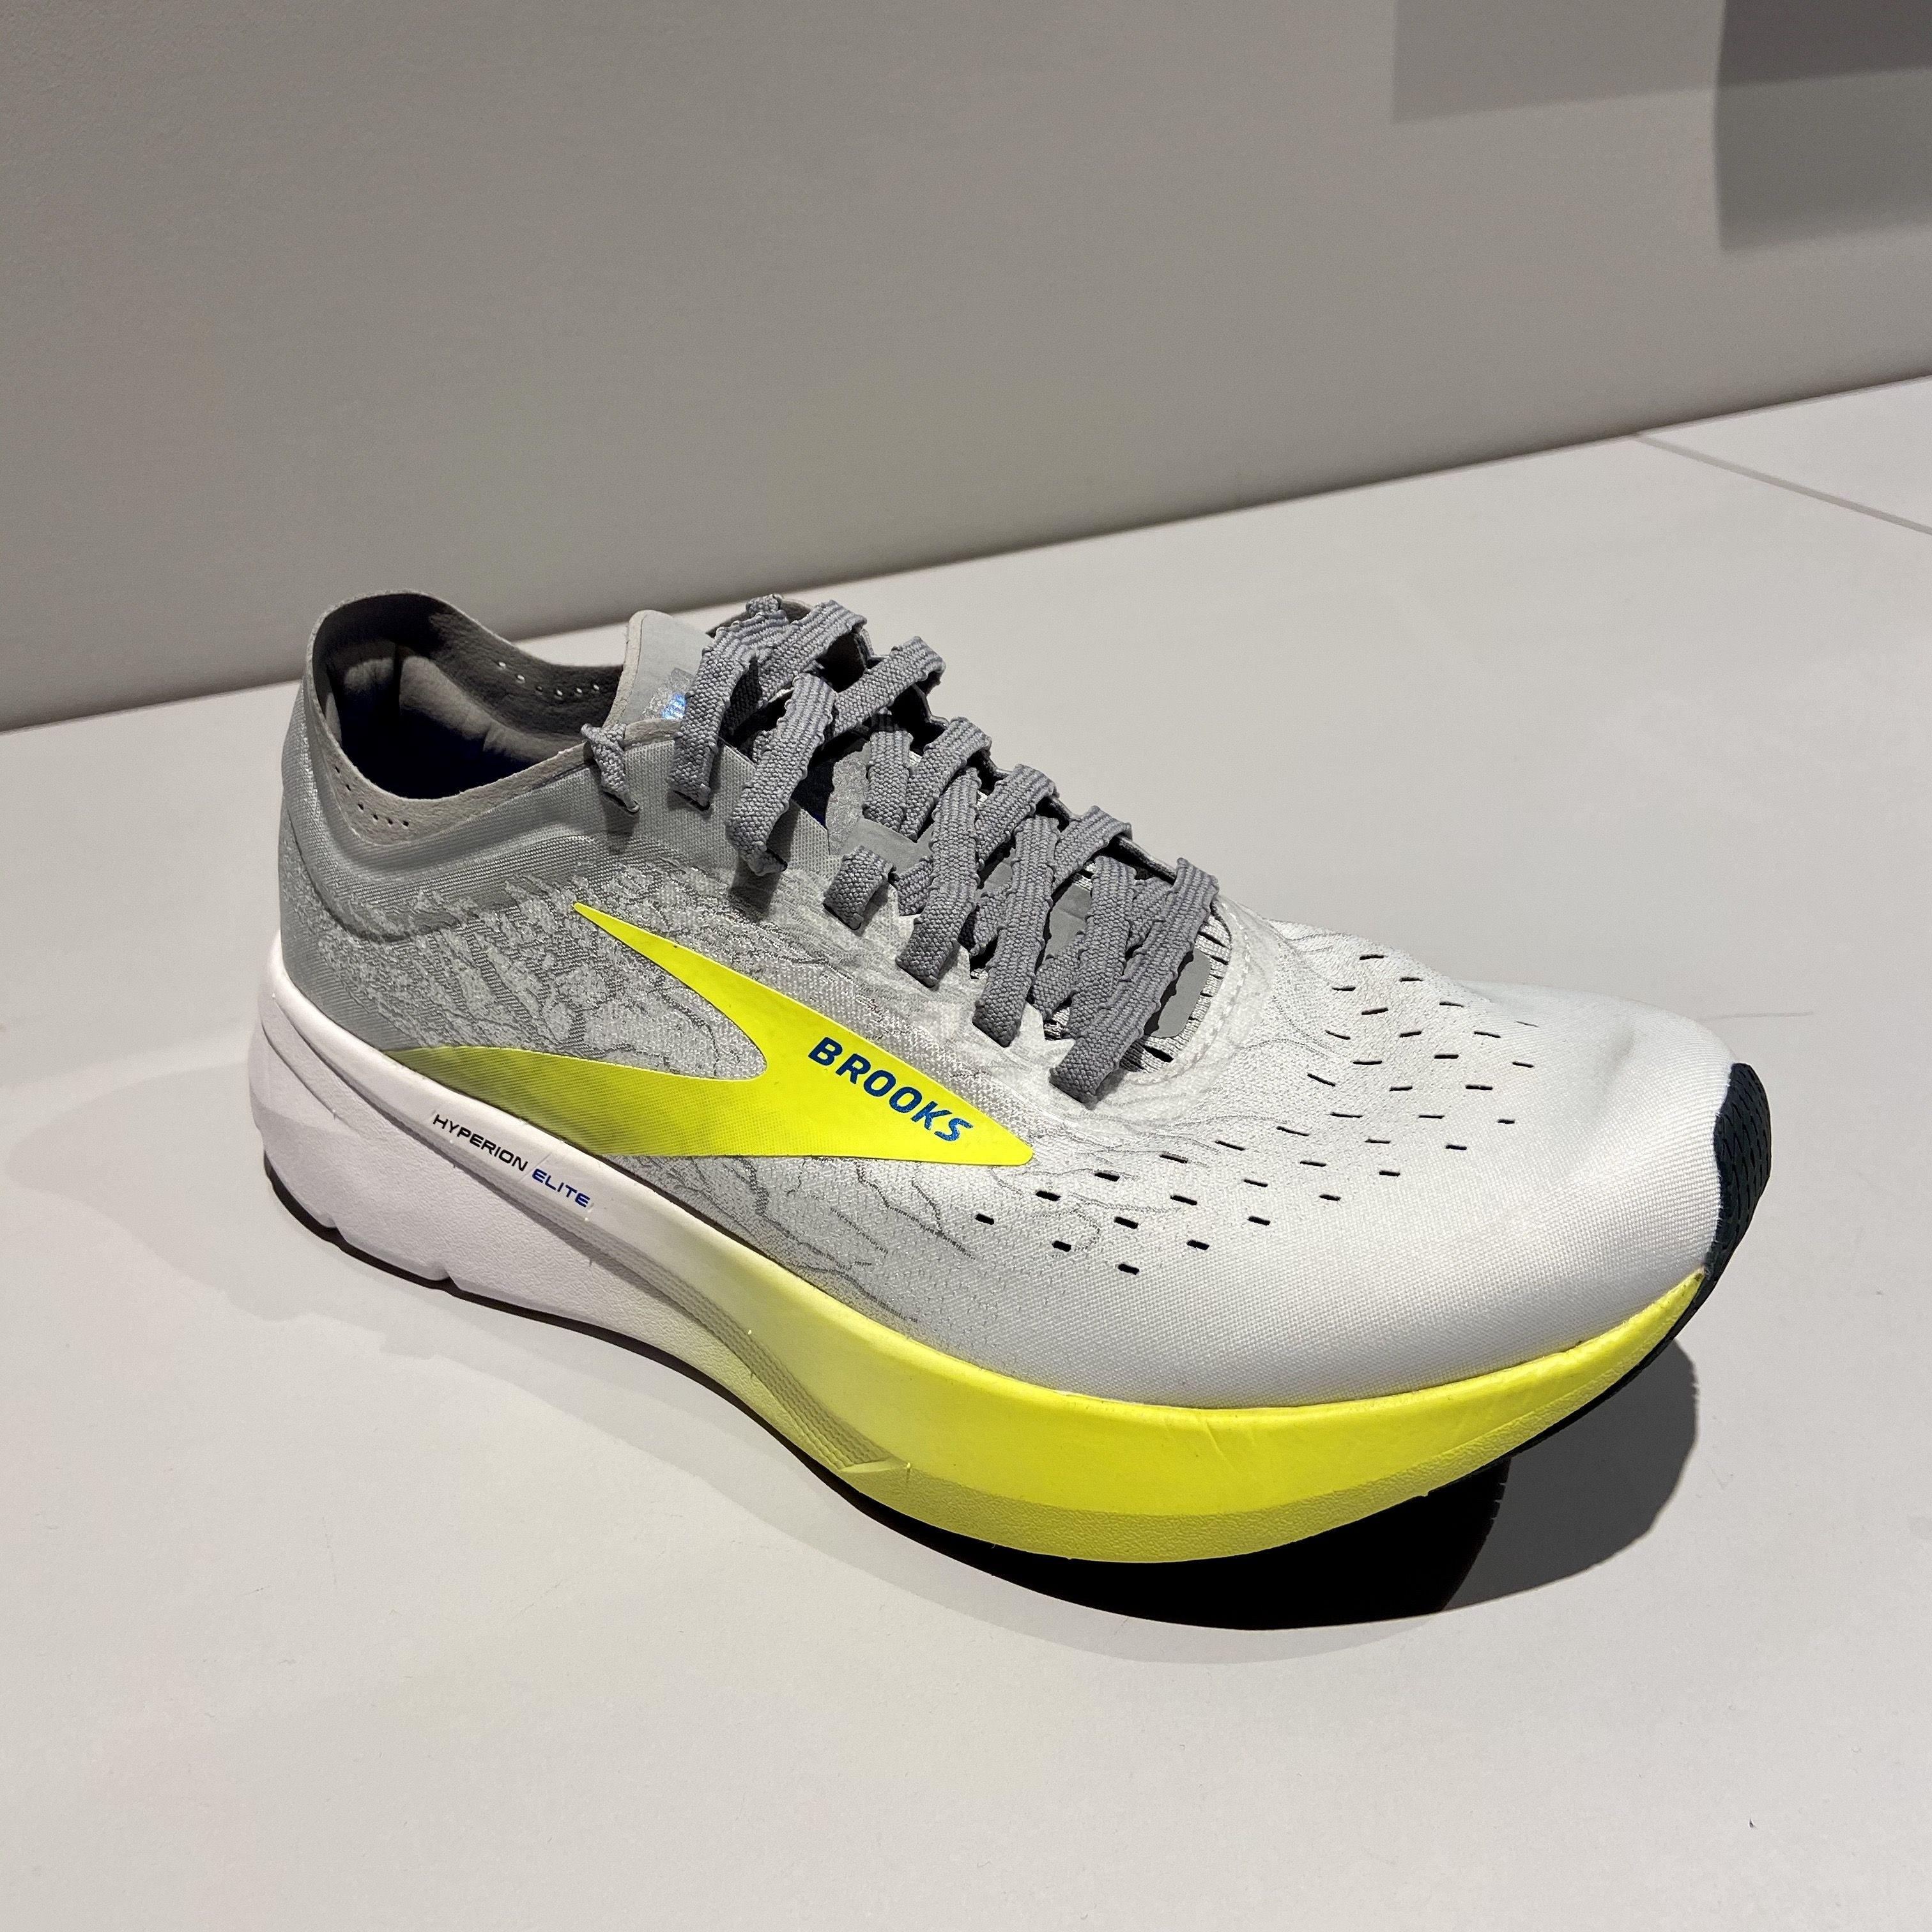 running shoe with a carbon fibre plate